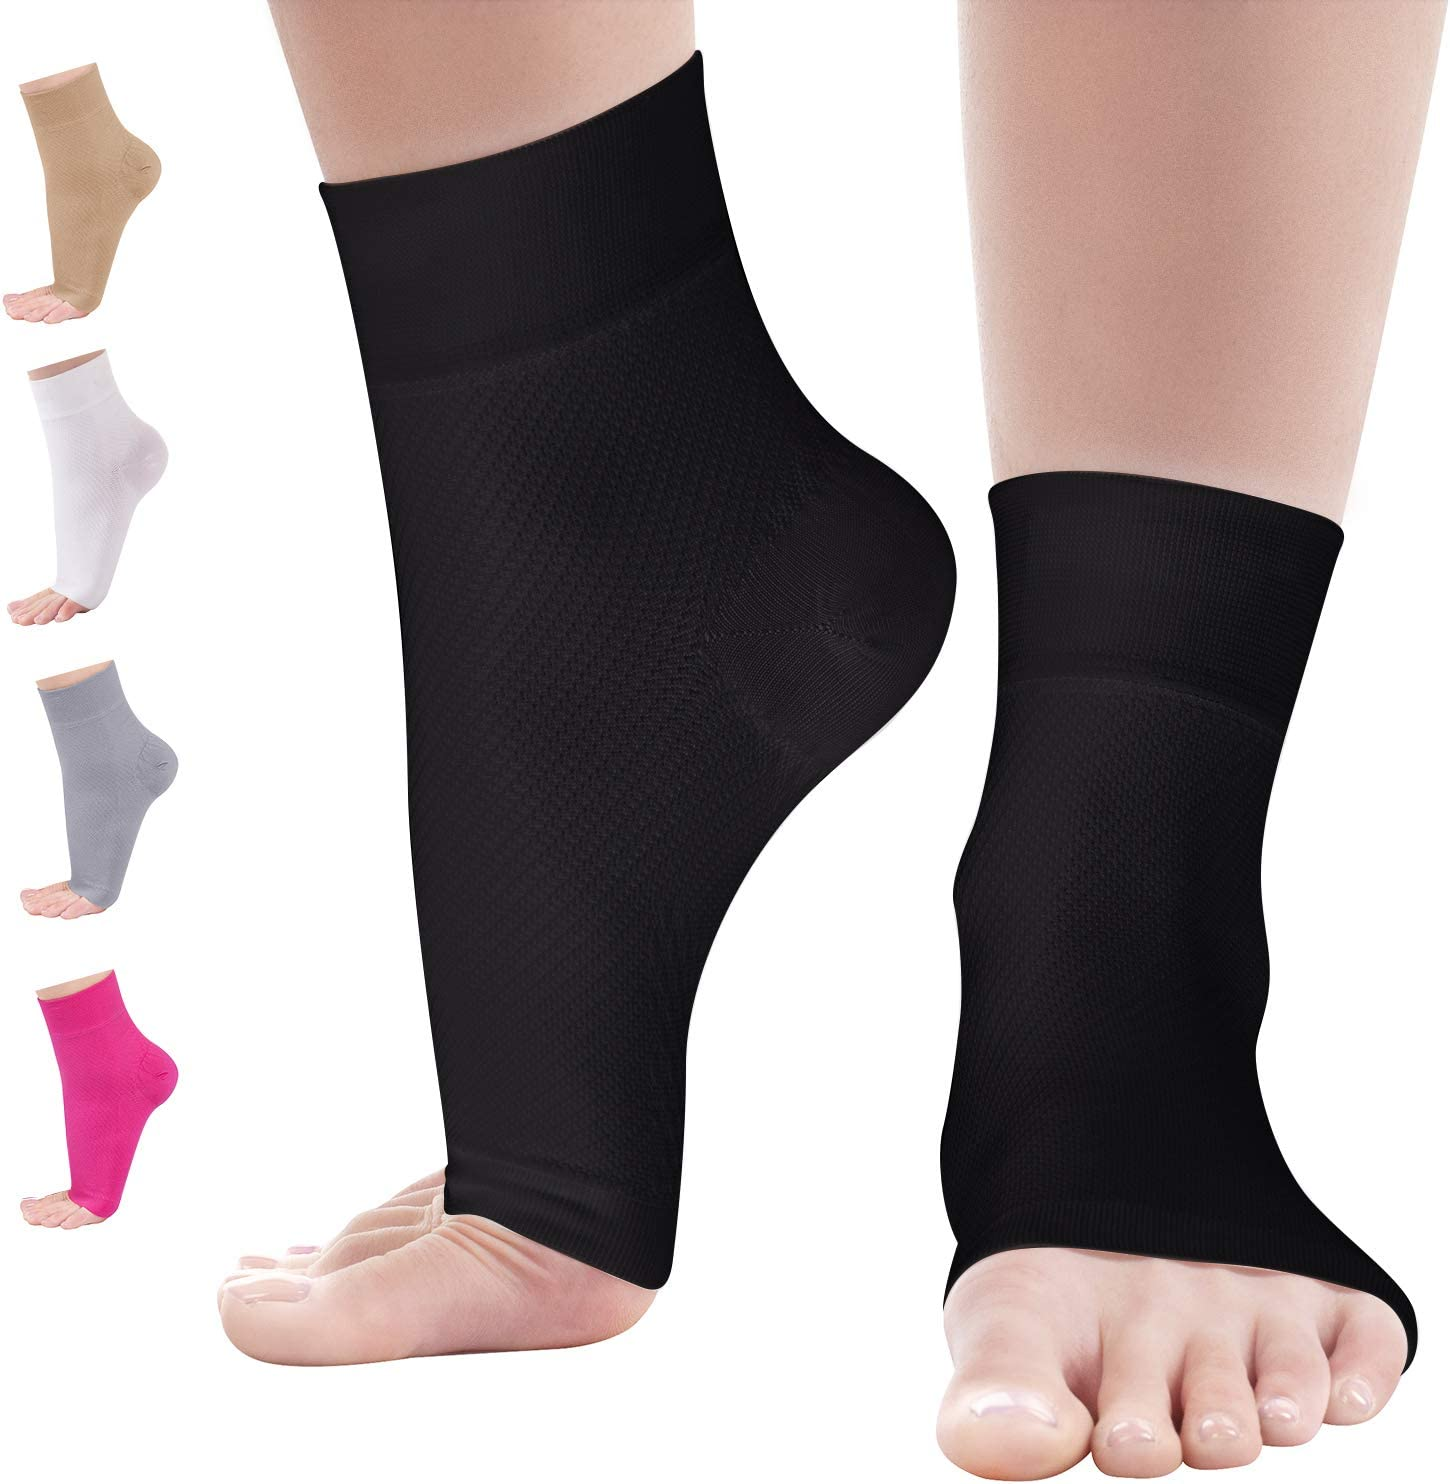 Ankle Compression Sleeve - 20-30mmhg Open Toe Сompression Socks for Swelling, Plantar Fasciitis, Sprain, Neuropathy - Nano Brace for Women and Men